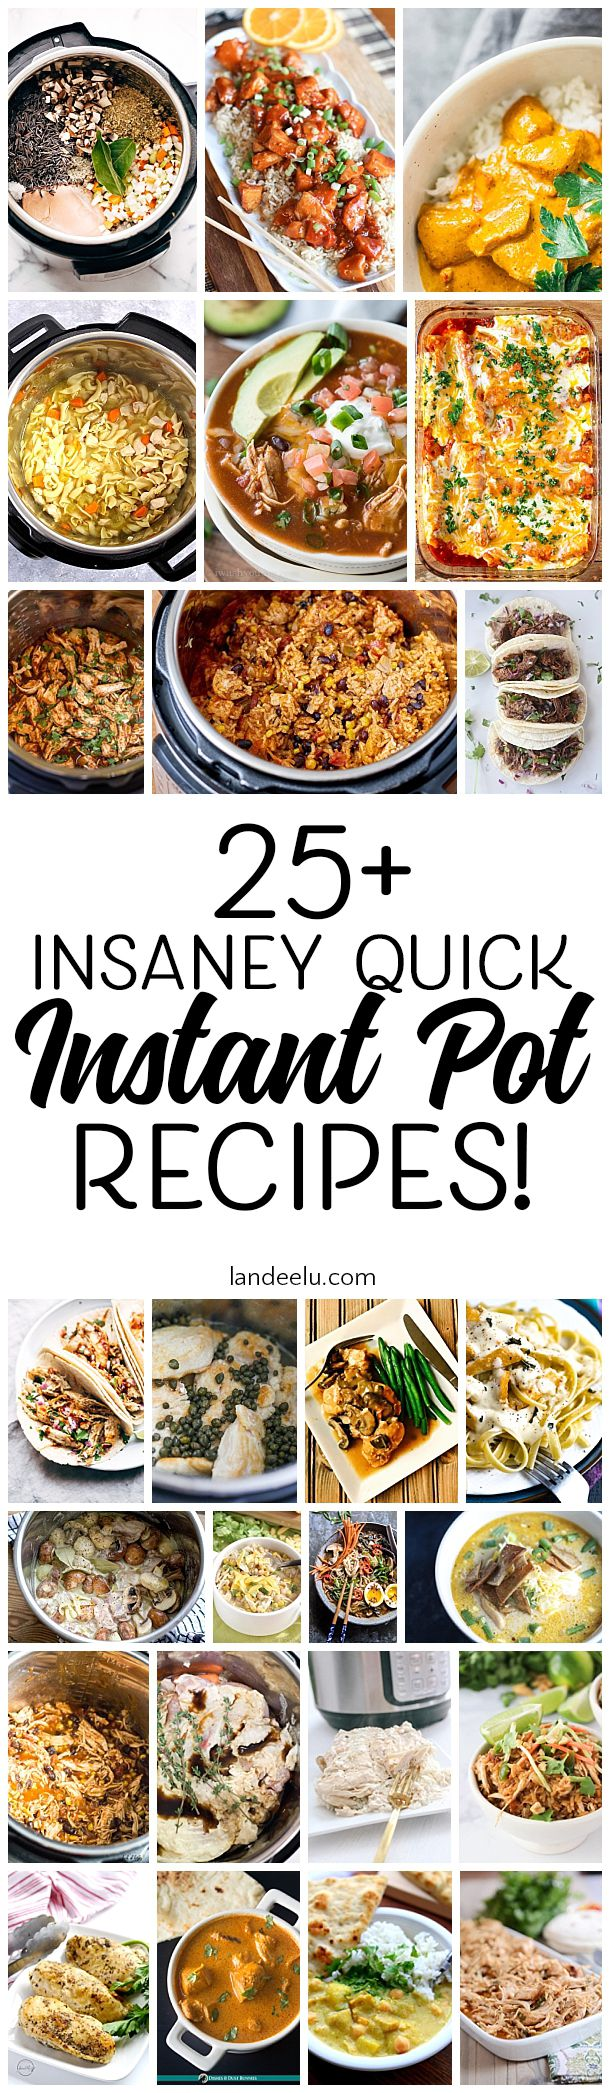 Over 25 awesome and quick instant pot recipes you'll want to try! #instantpotrec…